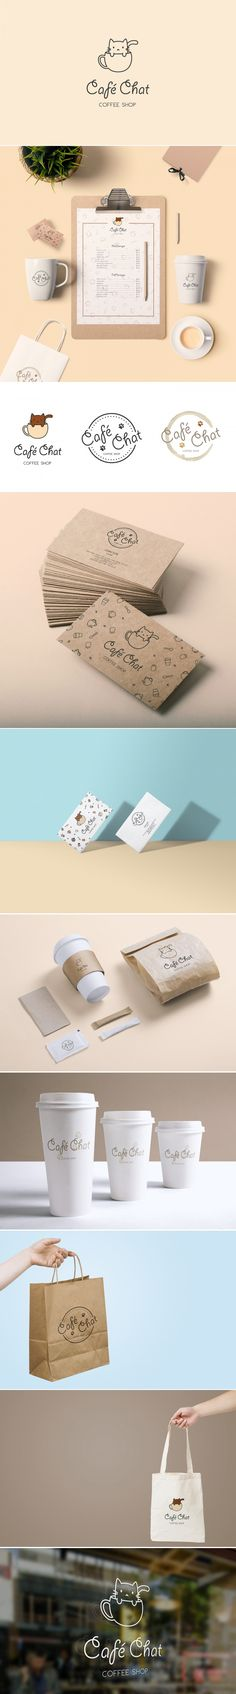 Café Chat is a faux branding of a cat café. The coffee shop's identity is minimal but with a cute look to it. Monoline widths help add a cute, but simple, look to the brand. Coffee Shop Branding, Cafe Branding, Cafe Logo, Restaurant Branding, Restaurant Marketing, Cat Design, Book Design, Graphic Design, Packaging Design